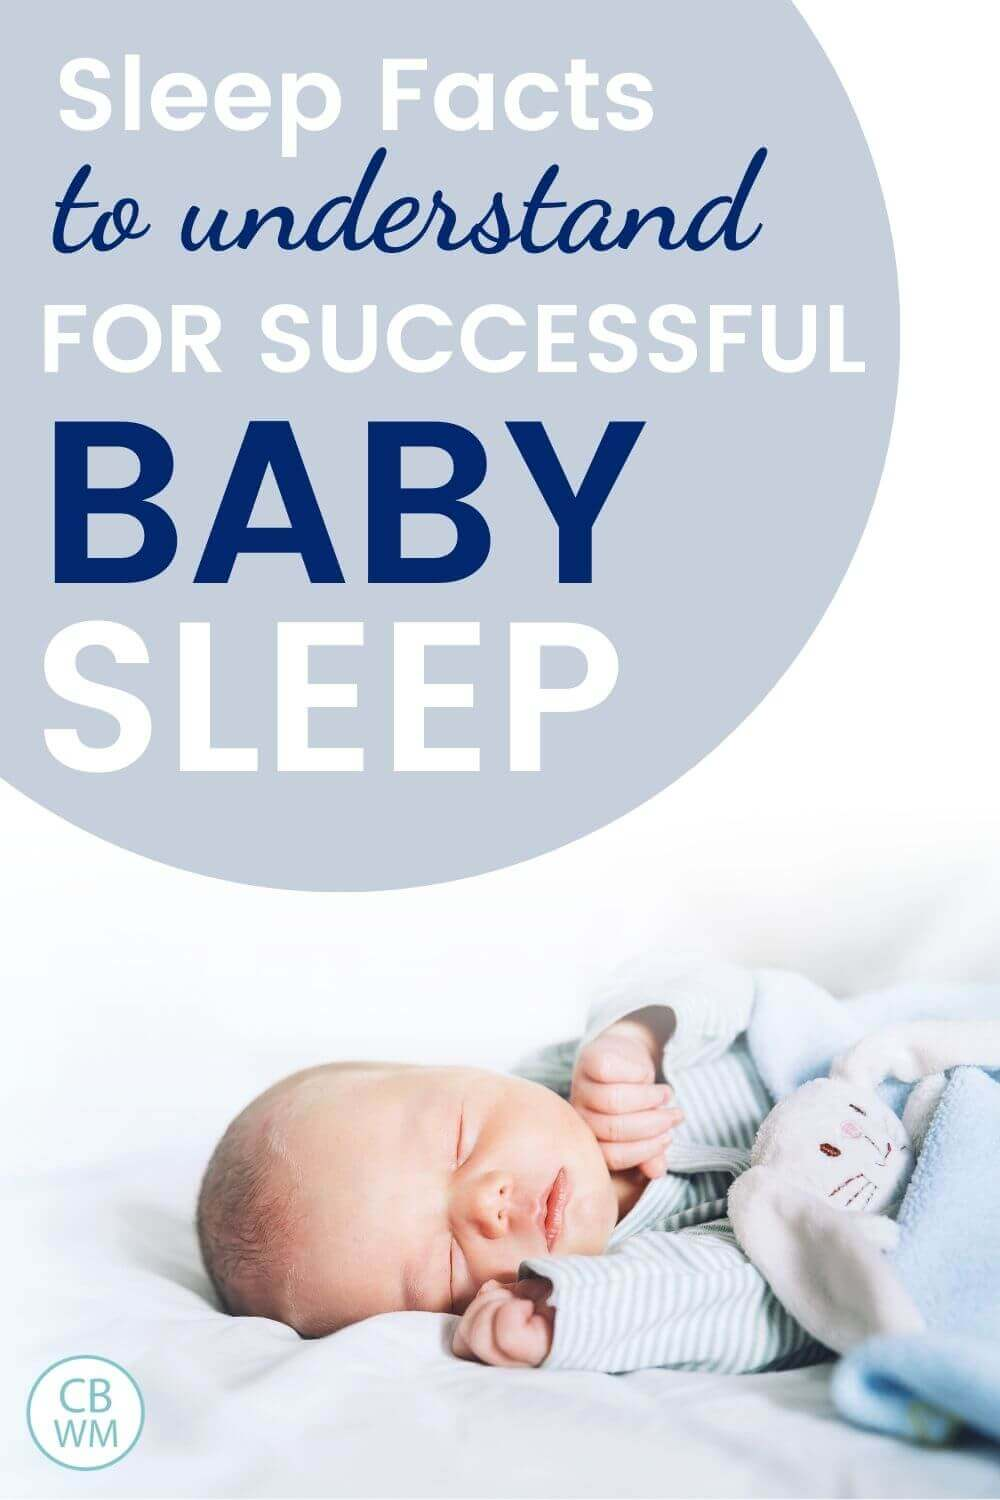 Tips for successful sleep pinnable image